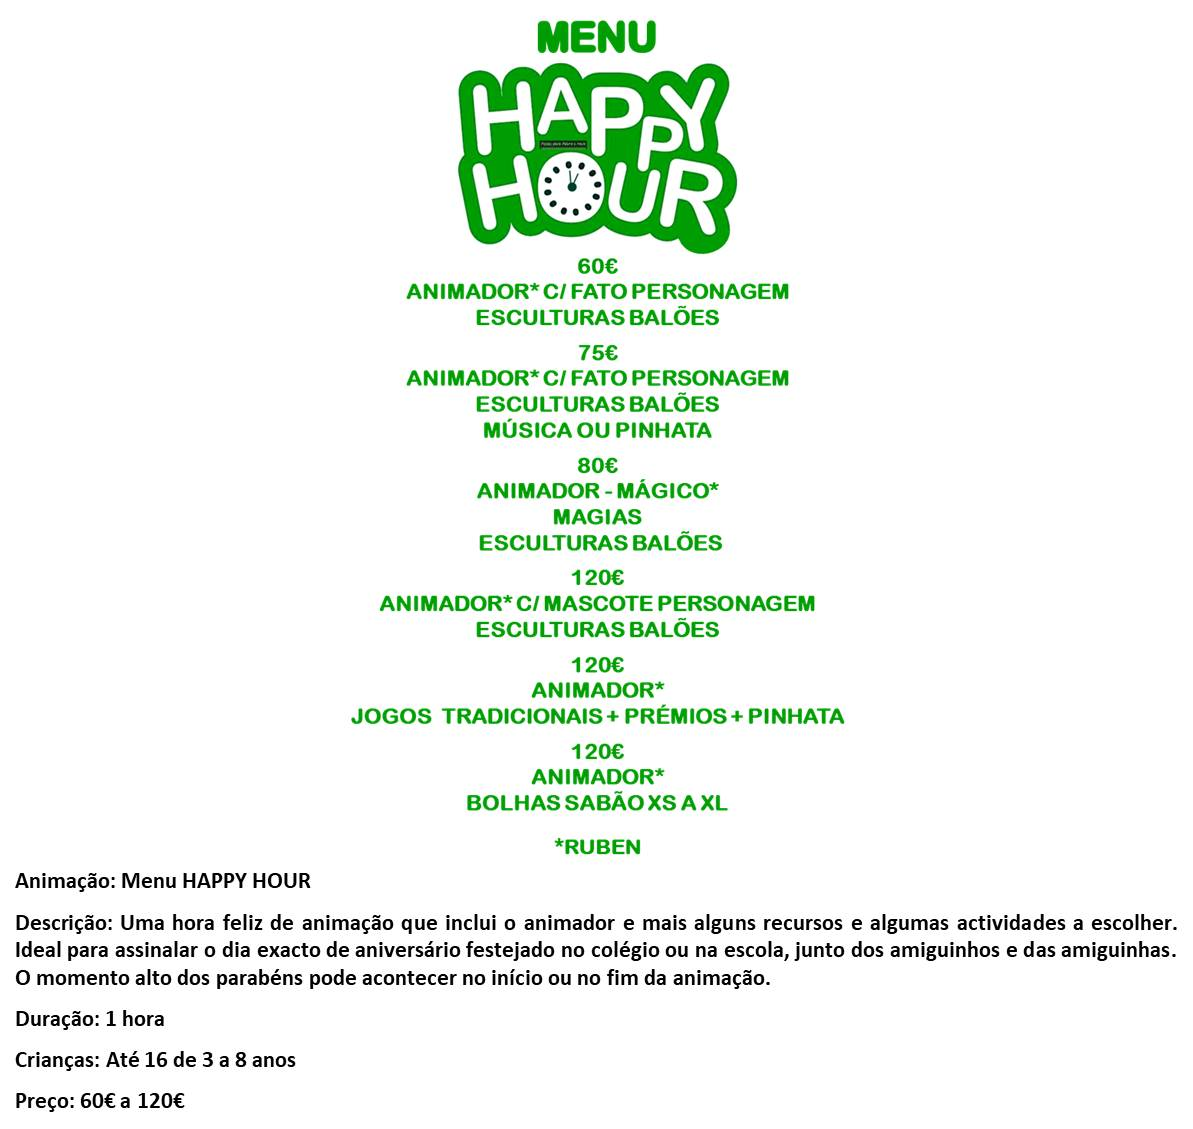 MENU HAPPY HOUR